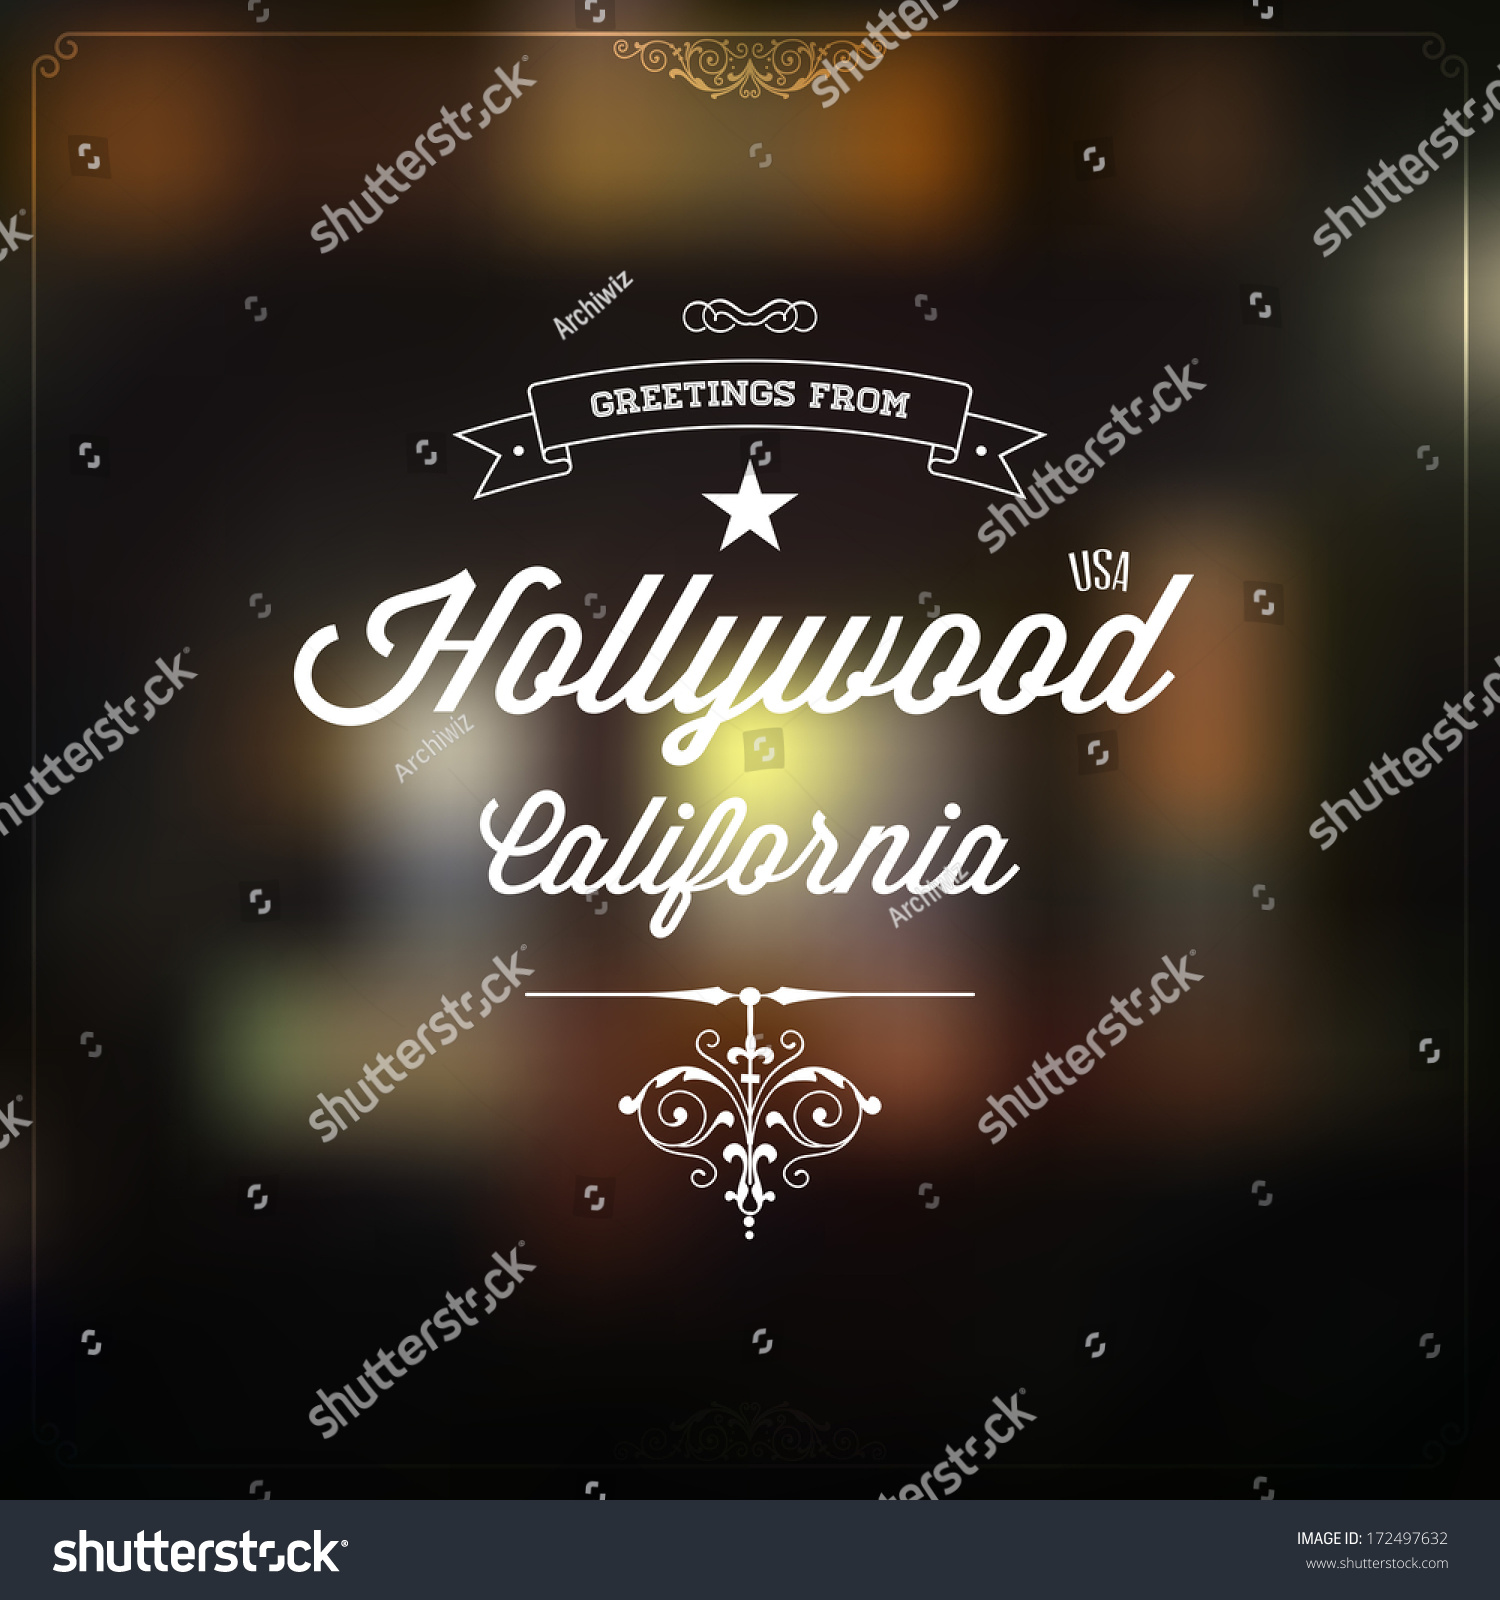 Retro Typography Vintage Touristic Greeting Label On Blurry Background Greetings From Hollywood California